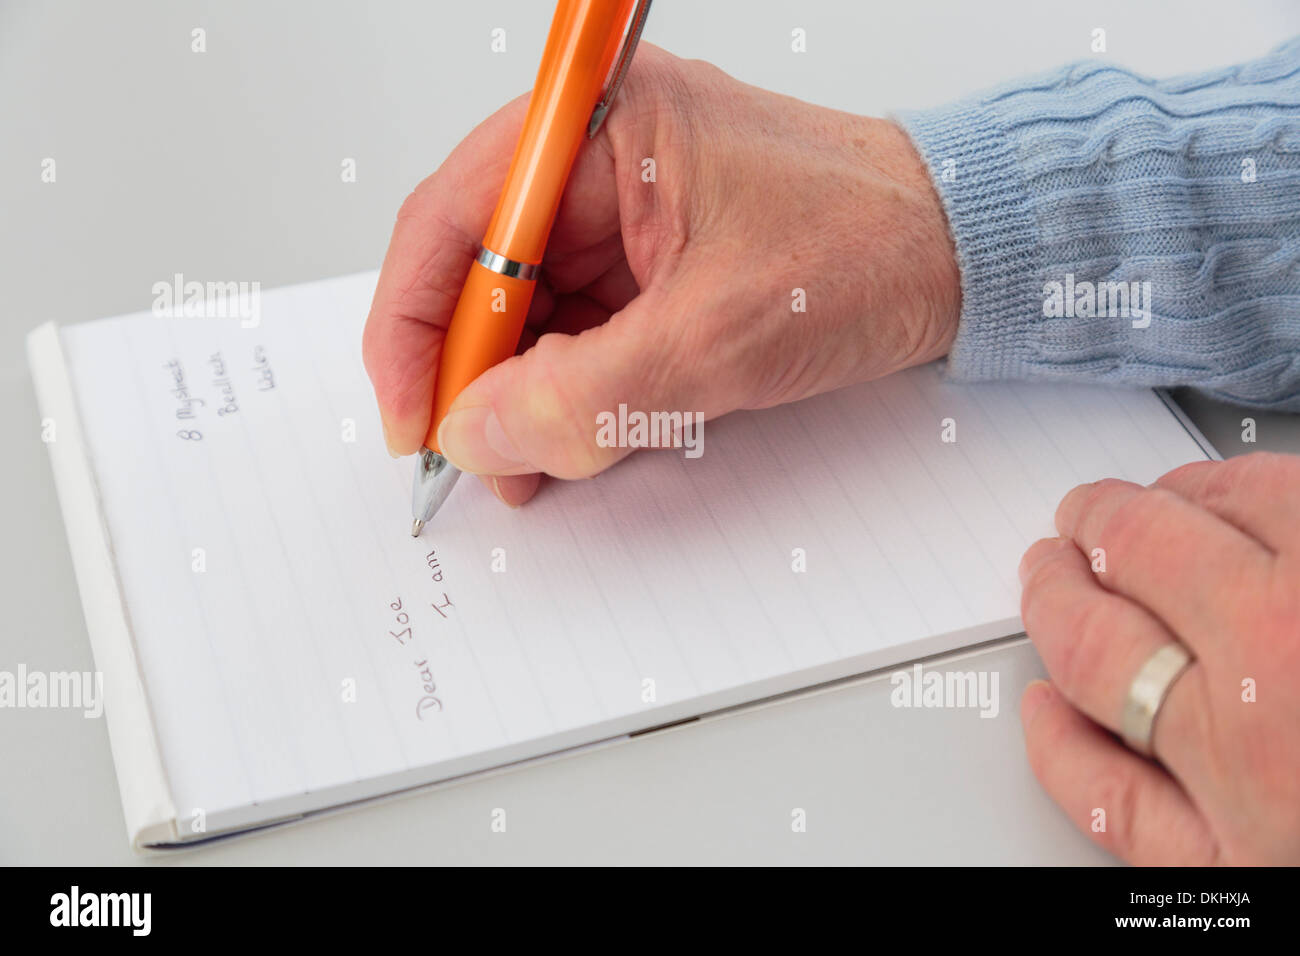 Top down of a right-handed senior woman's hand holding a pen writing a letter on a notepad of paper on a tabletop. Stock Photo